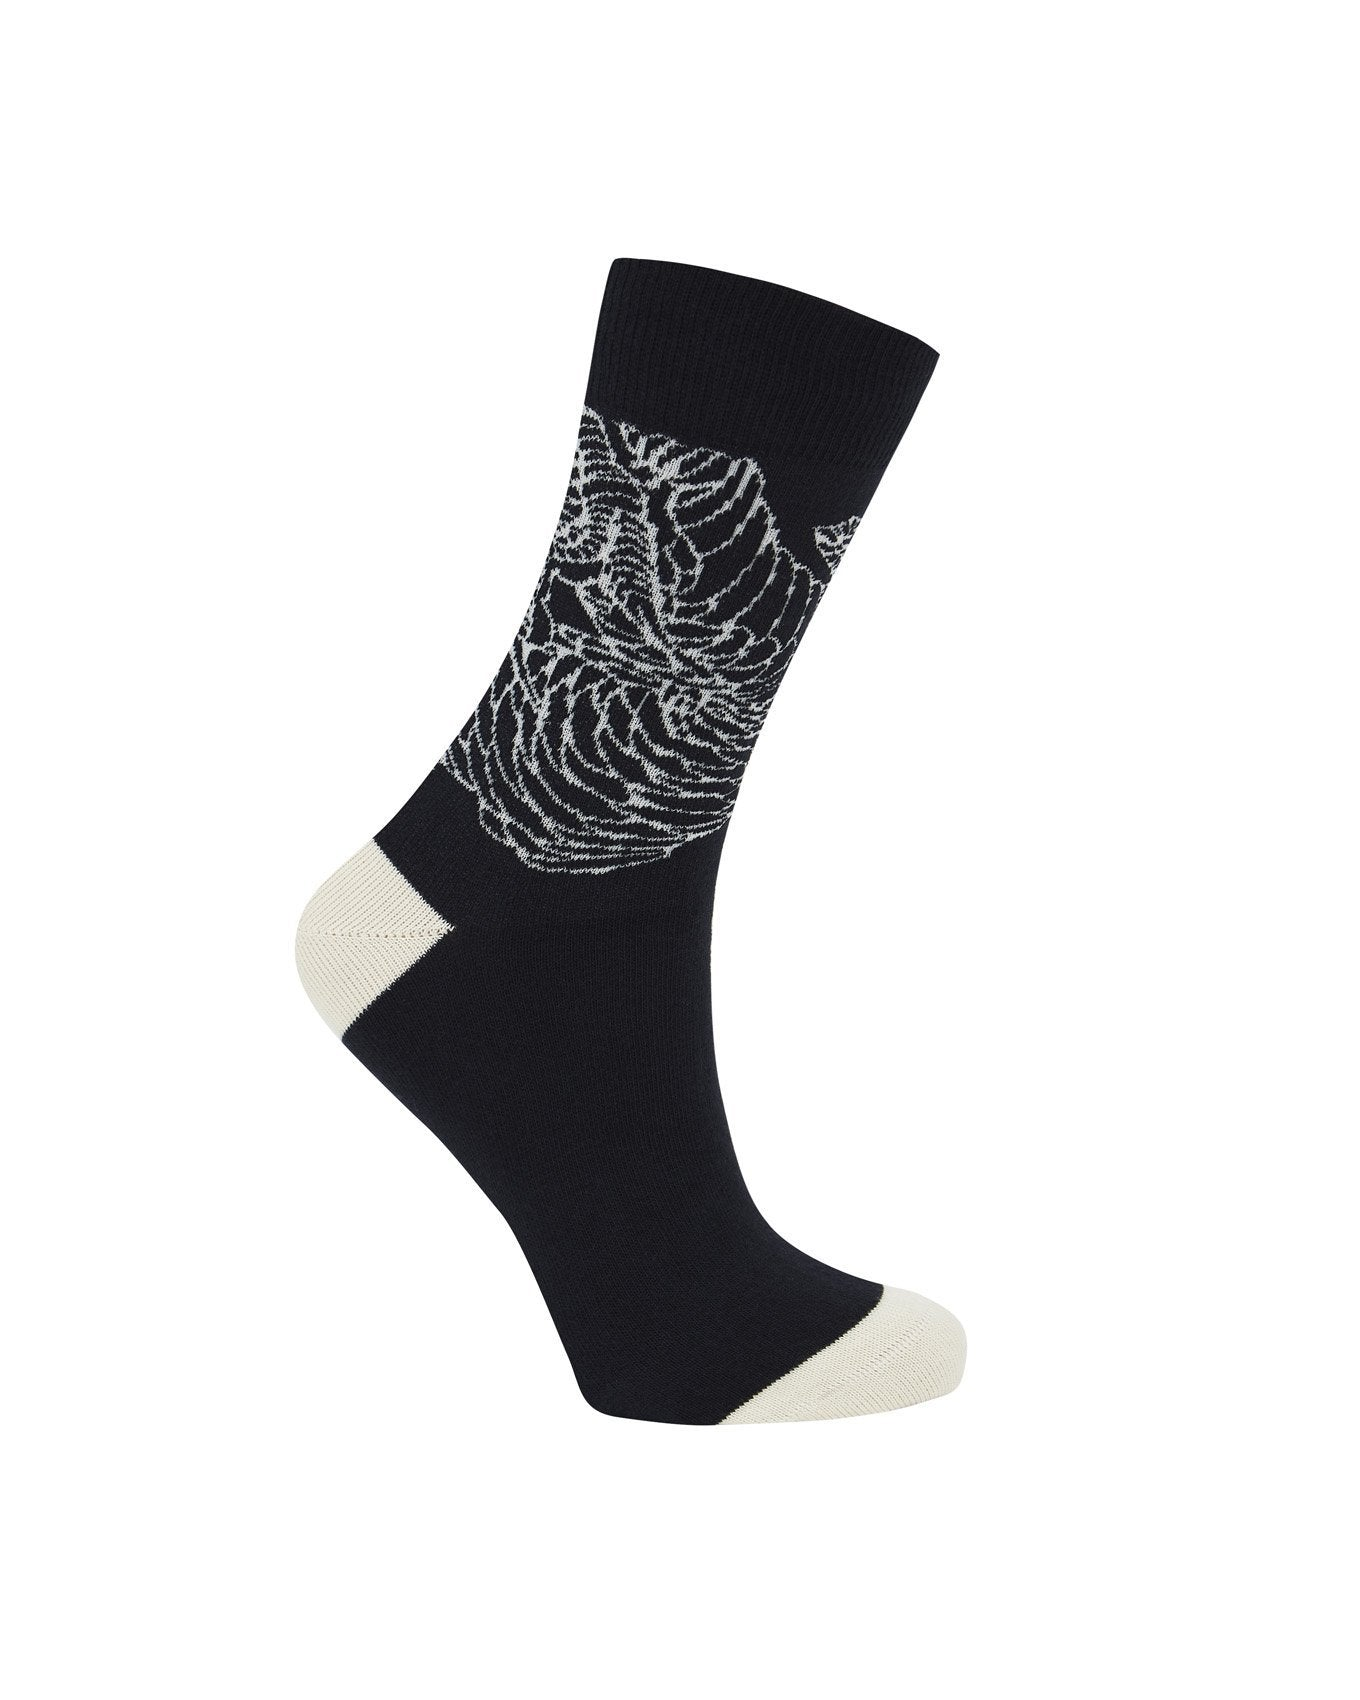 Socks - DRAGON Ink - GOTS Organic Cotton Socks